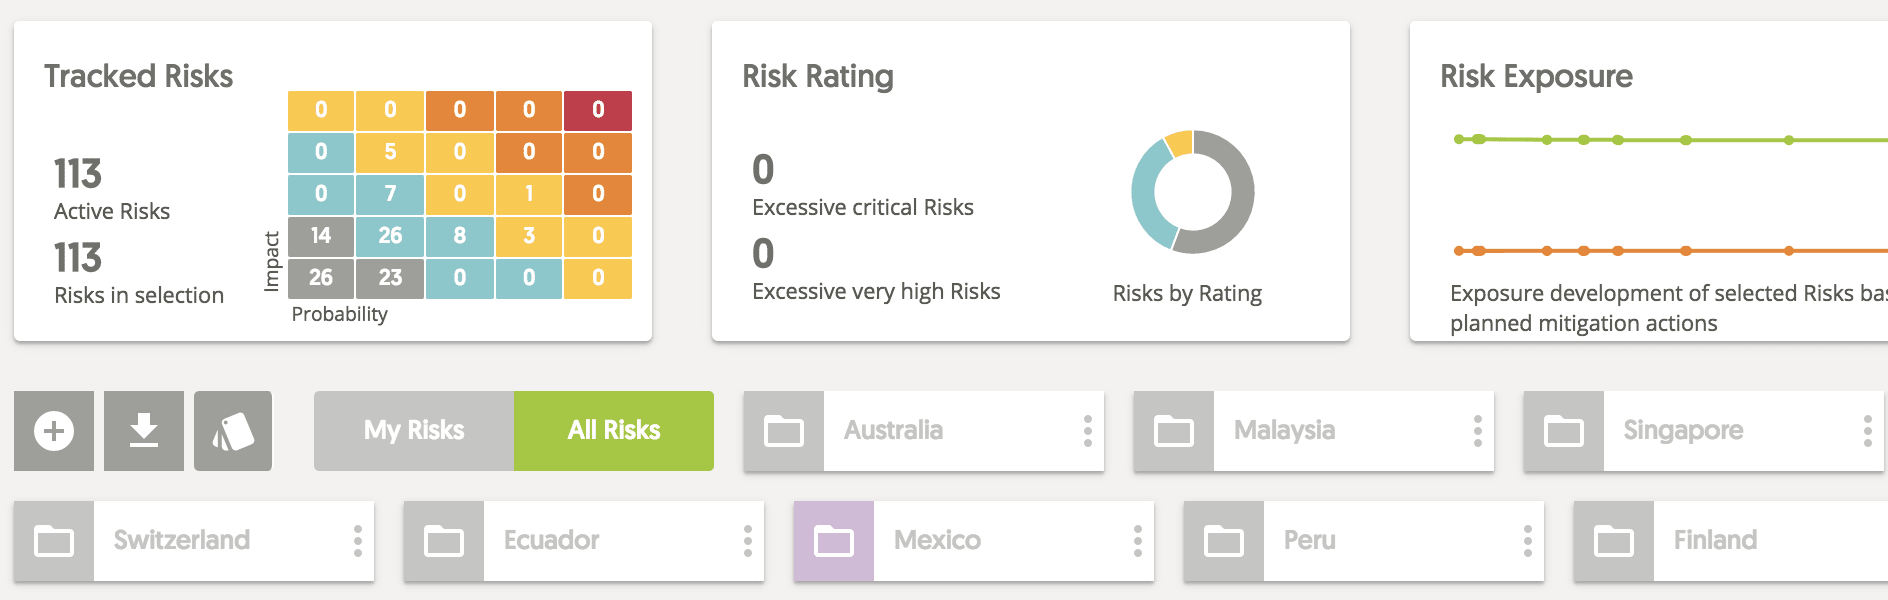 risk trends, risk heatmaps and risk exports